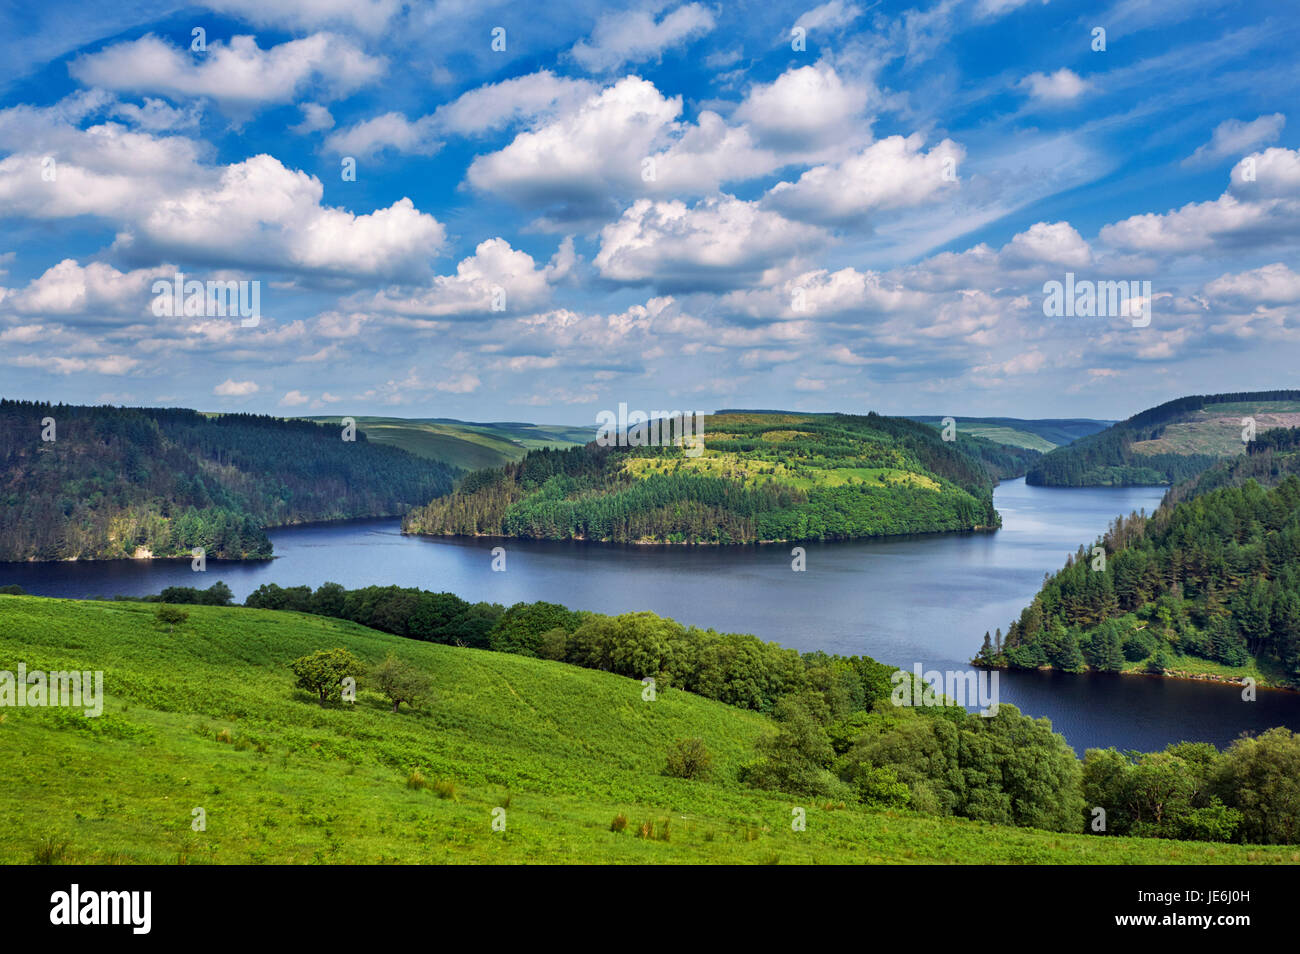 Llyn Brianne reservoir in the Towy Forest, completed in 1972. Powys, Wales. - Stock Image